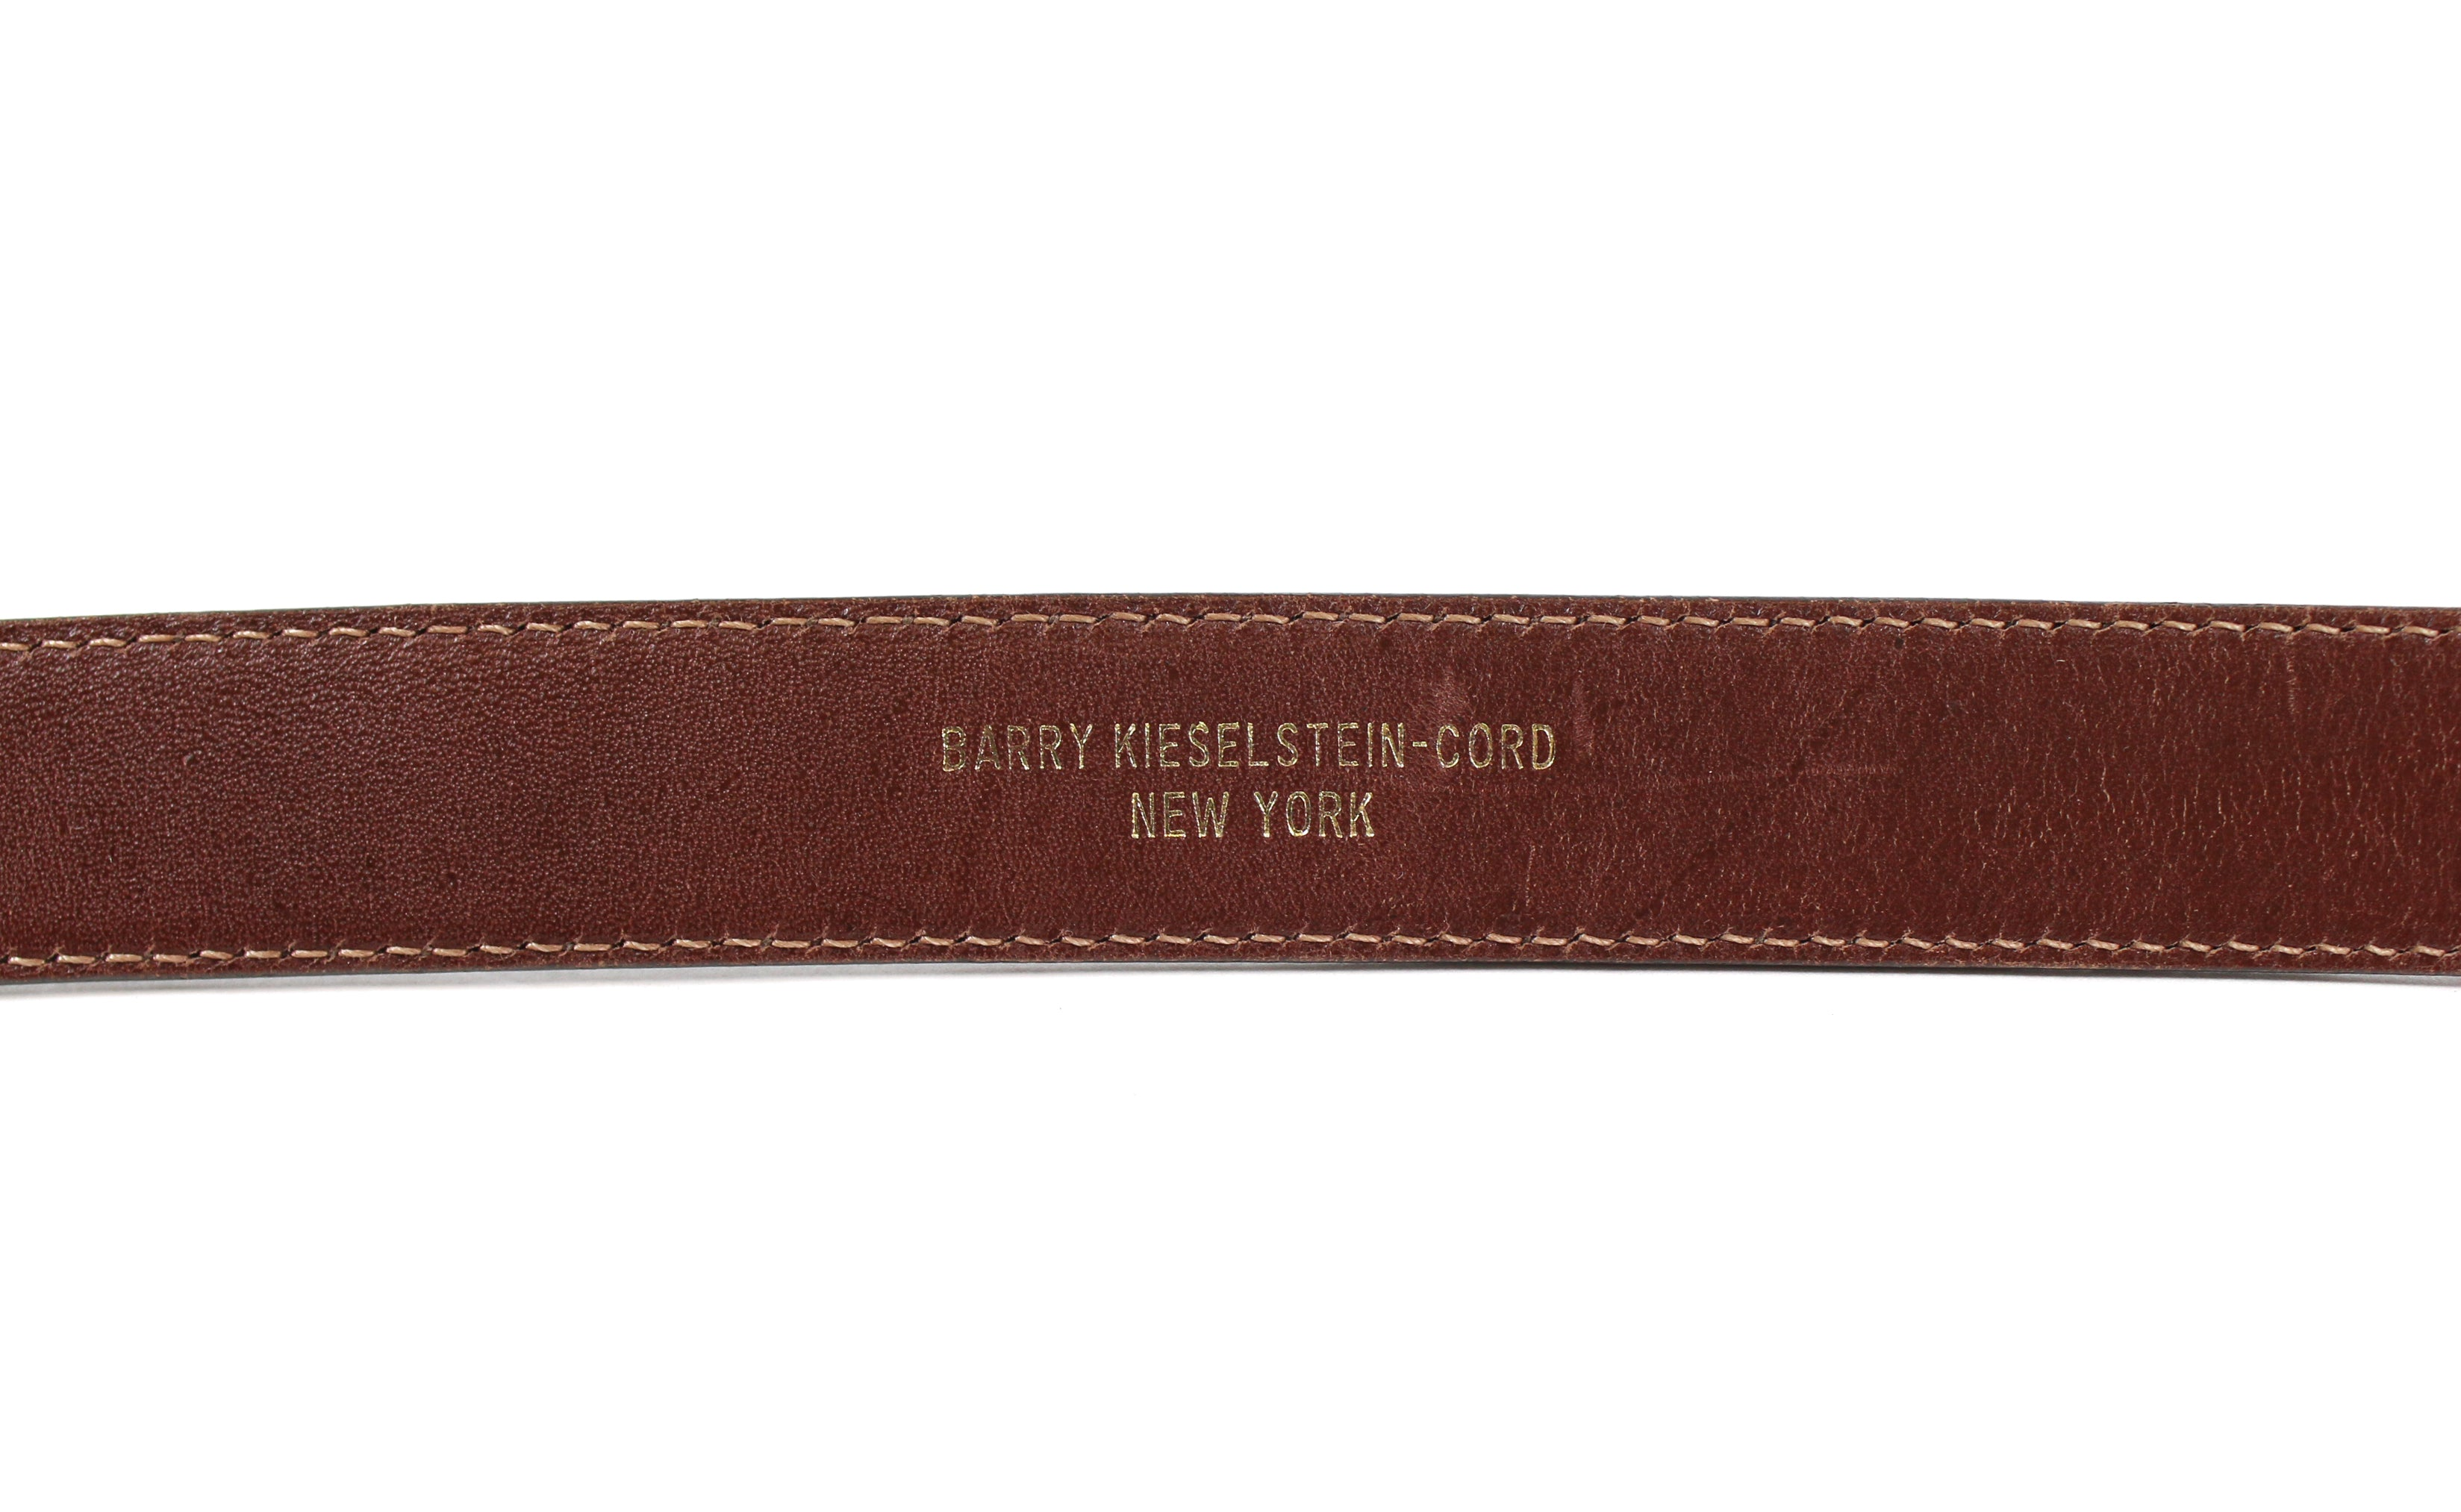 'Sold' Barry Kieselstein-Cord Elephant Buckle Dark Brown Alligator Belt